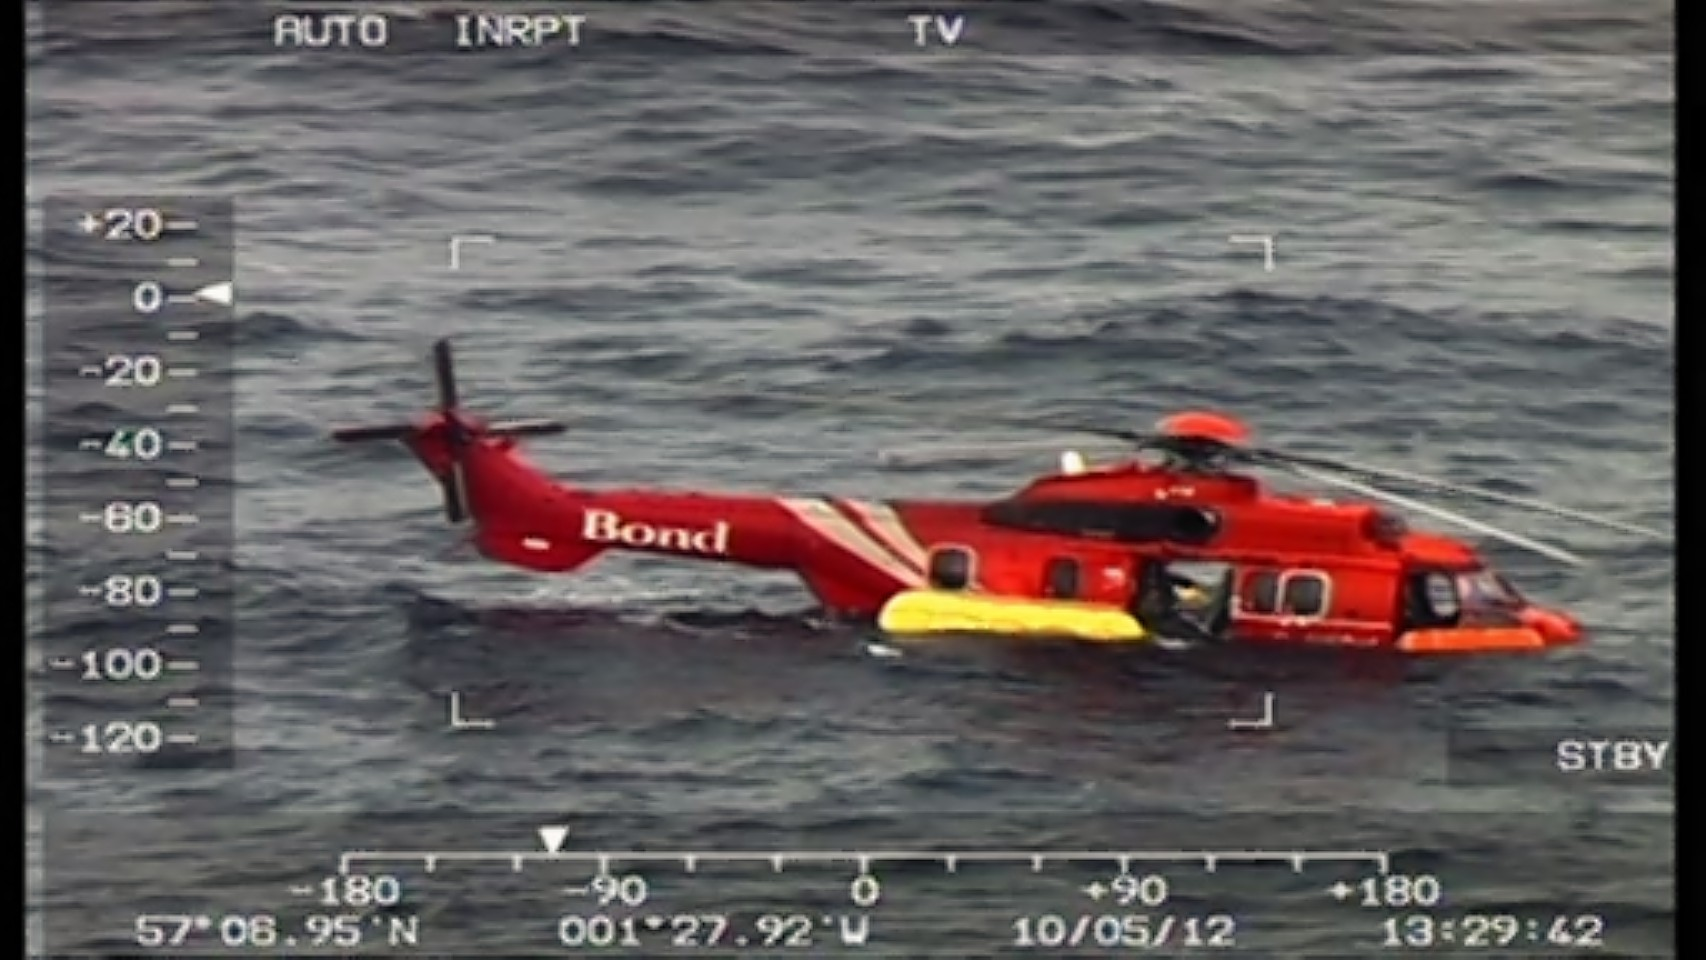 The downed Bond EC 225 Super Puma helicopter in the North Sea around 30 miles off the coast of Aberdeen